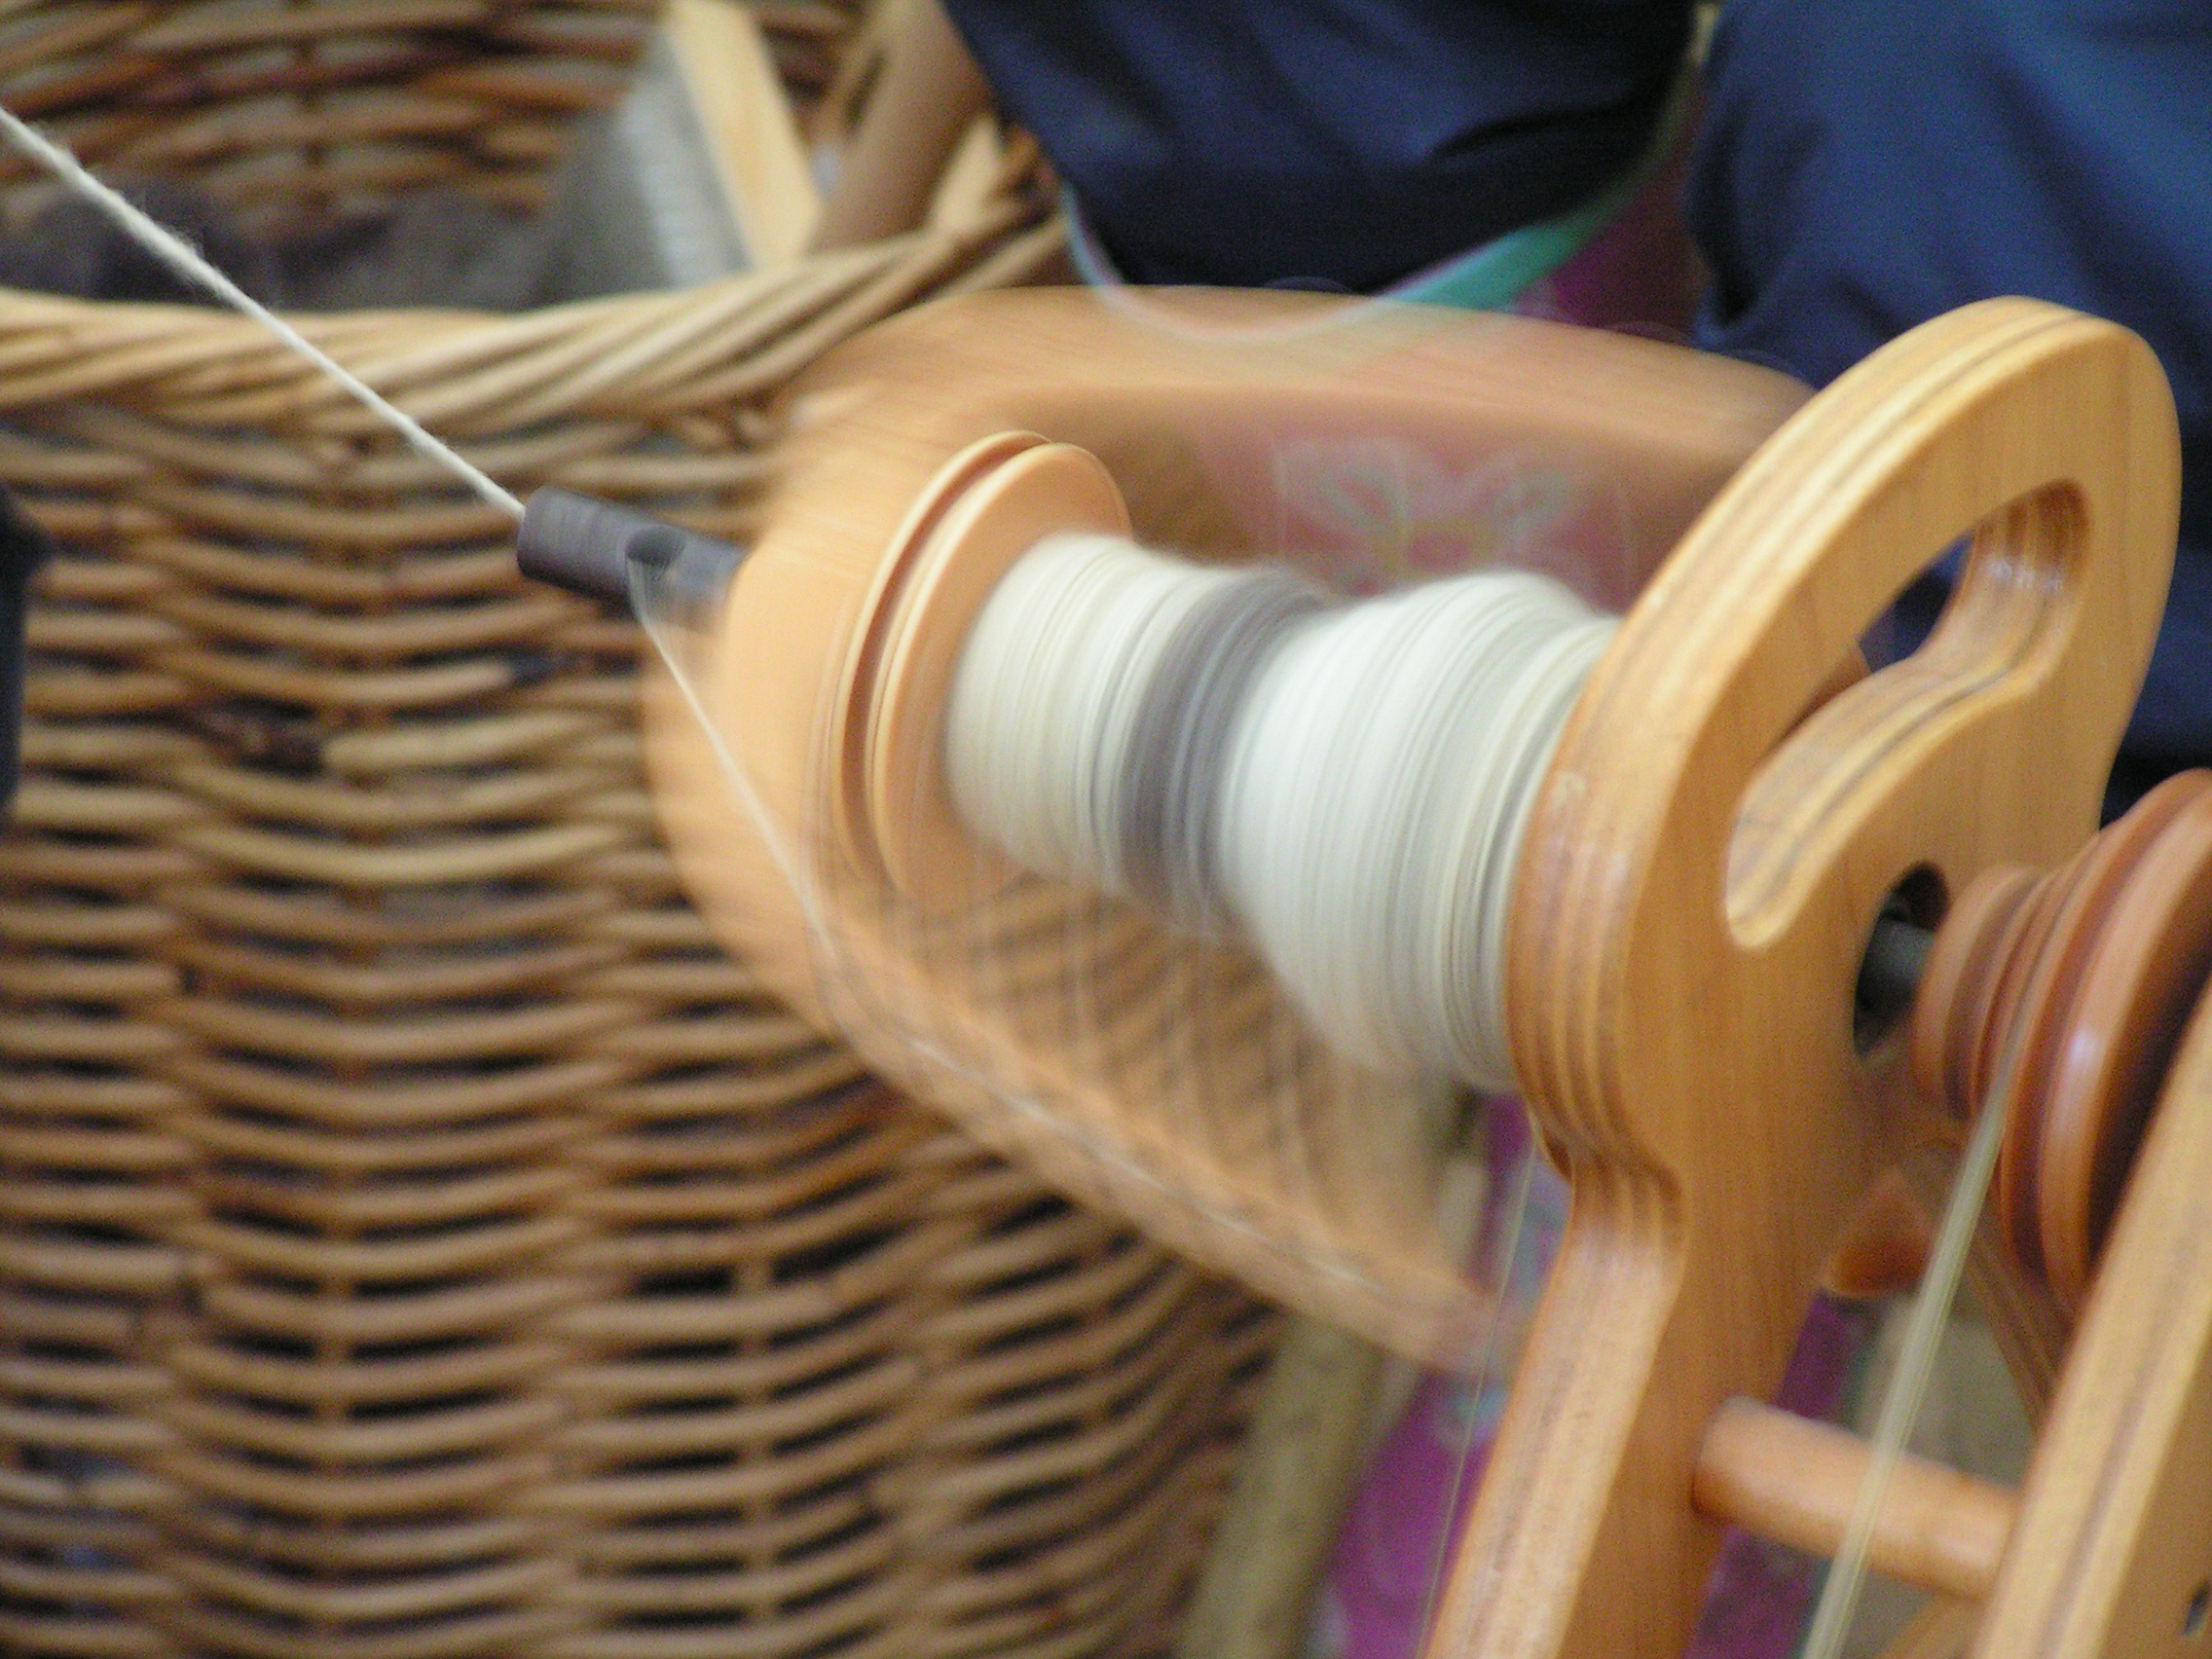 Spinning wool by hand